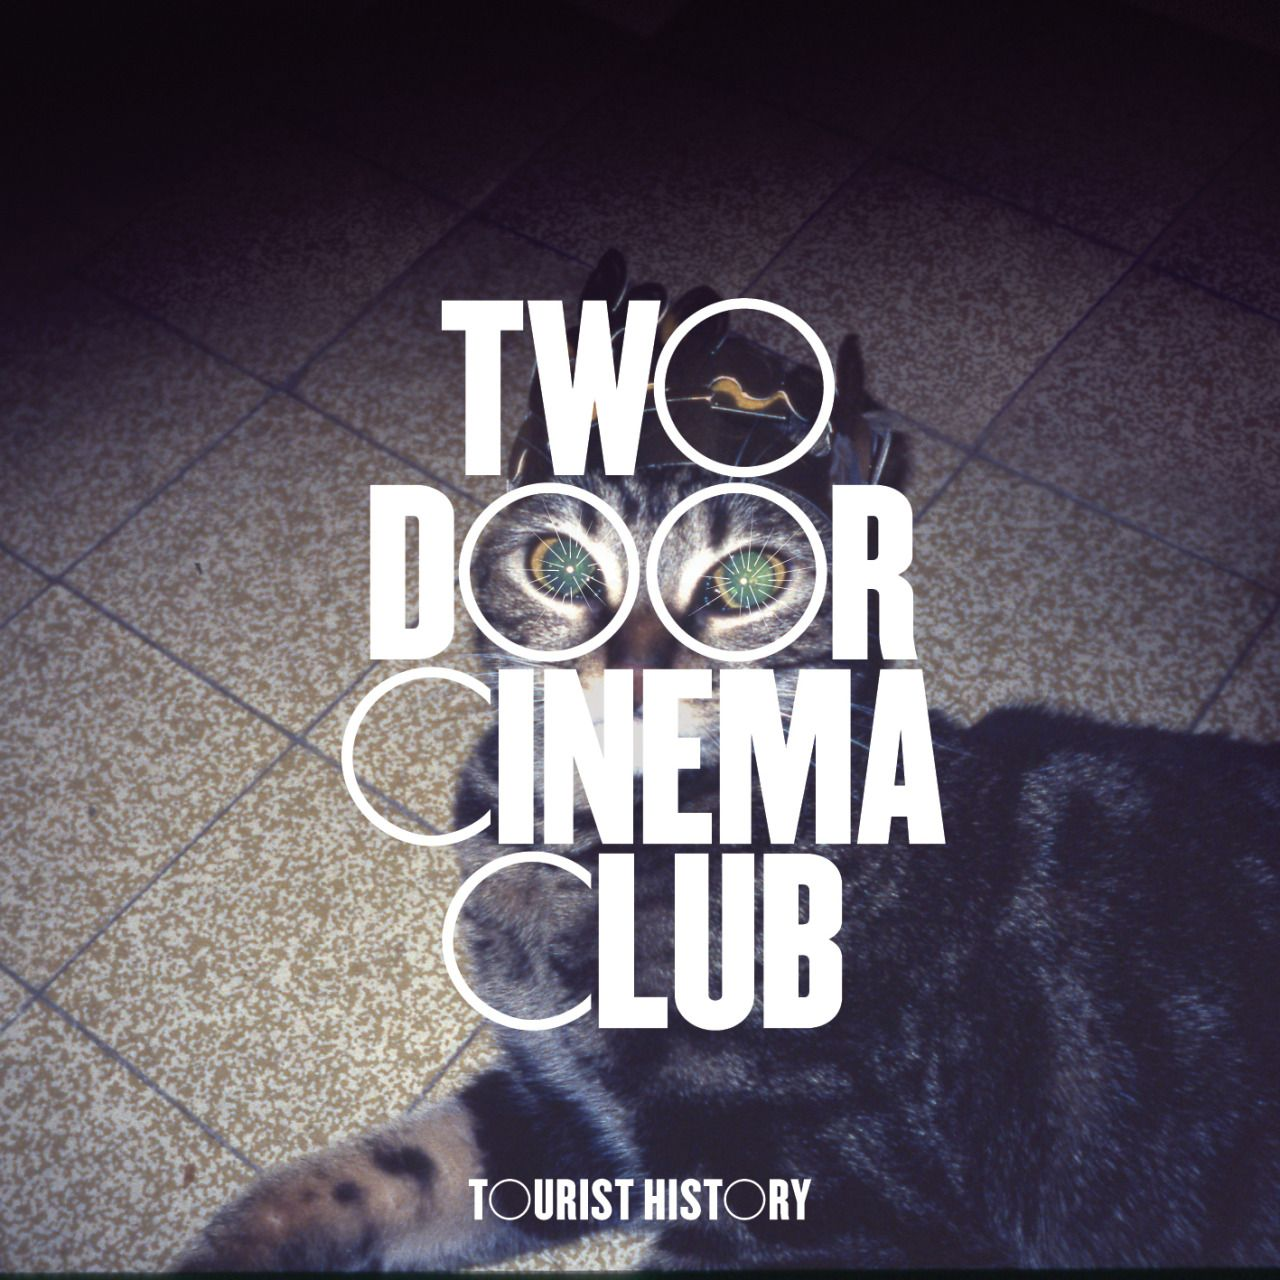 Two Door Cinema Club Concert Poster Graphic Design Screen Print Rock Poster With Images Two Door Cinema Club Rock Posters Music Poster